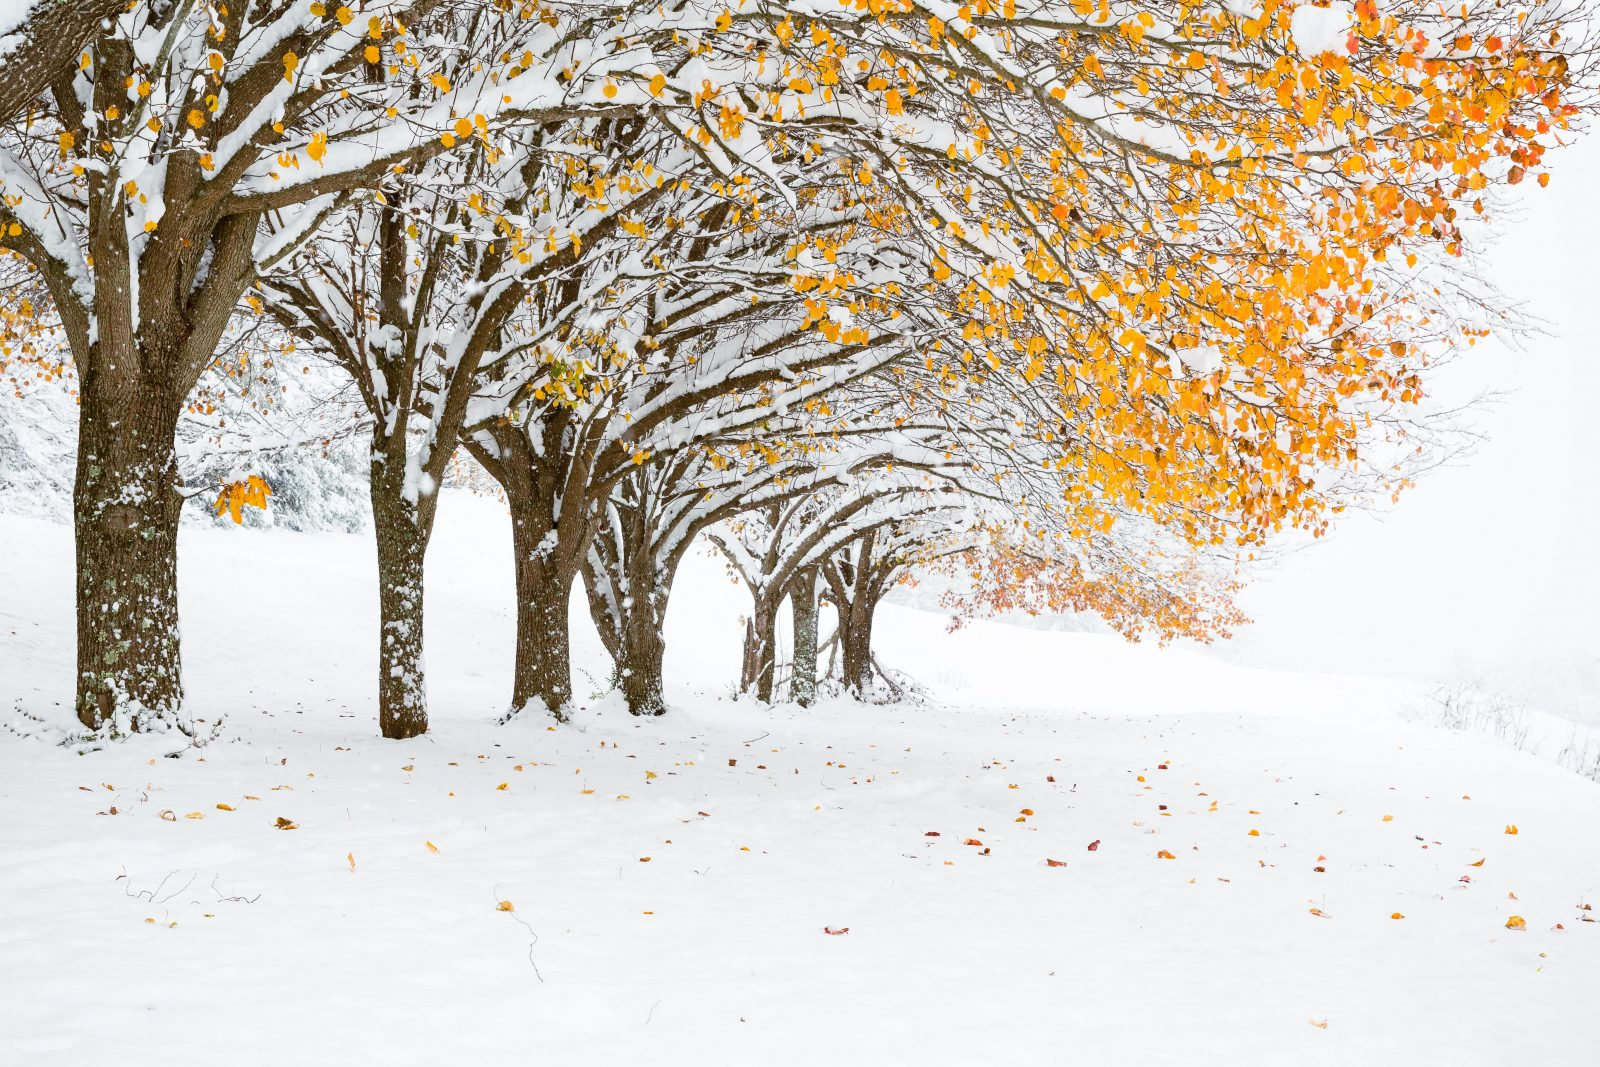 From Fall to Winter